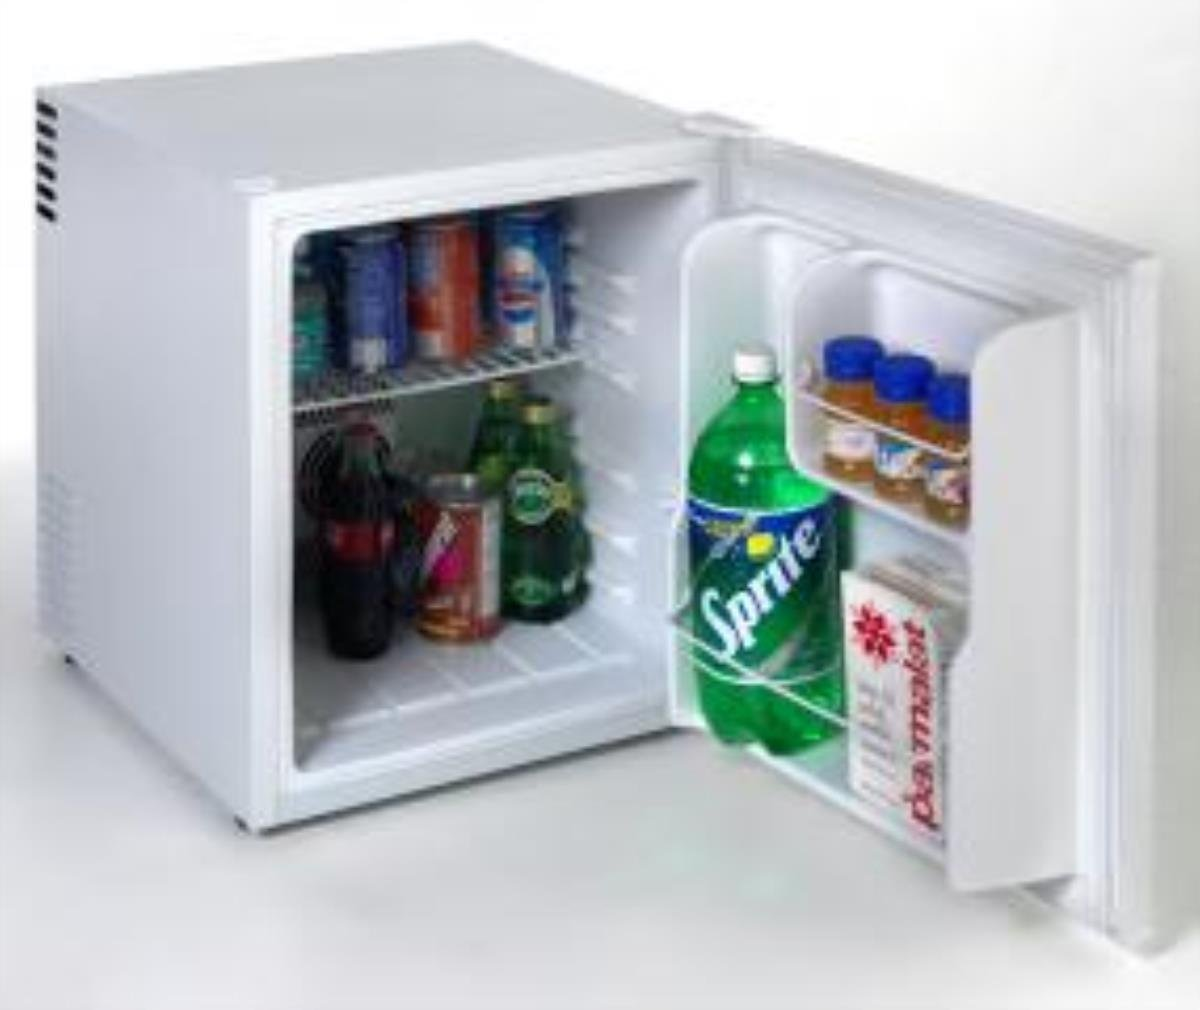 refrigerator 7 5 cu ft. 7.4 cubic foot refrigerator | avanti wine cooler 7 5 cu ft